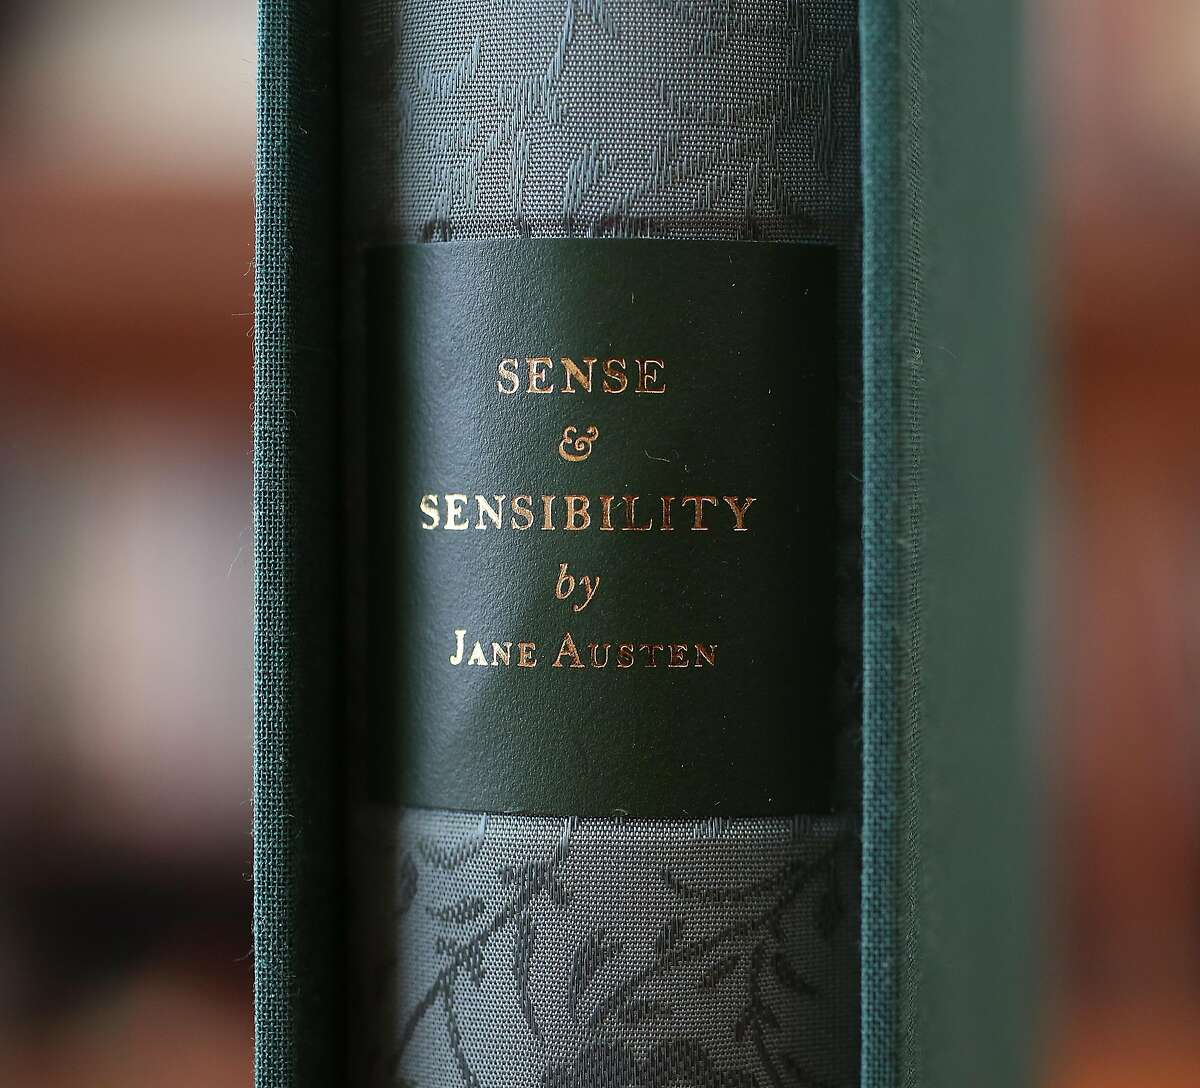 """The newest creation from Arion Press is limited edition works by Jane Austen's """"Sense and Sensibility"""" with original artwork from SF artist Augusta Talbot on Monday, December 4, 2017, in San Francisco, Calif."""